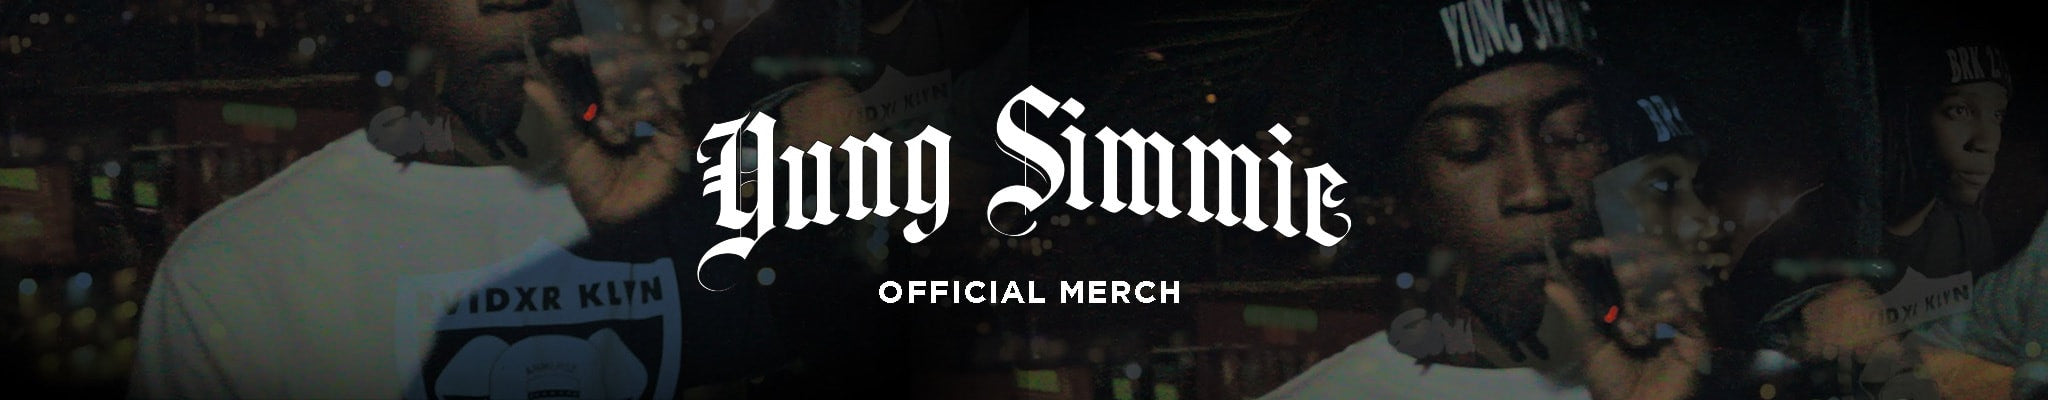 Yung Simmie Clothing